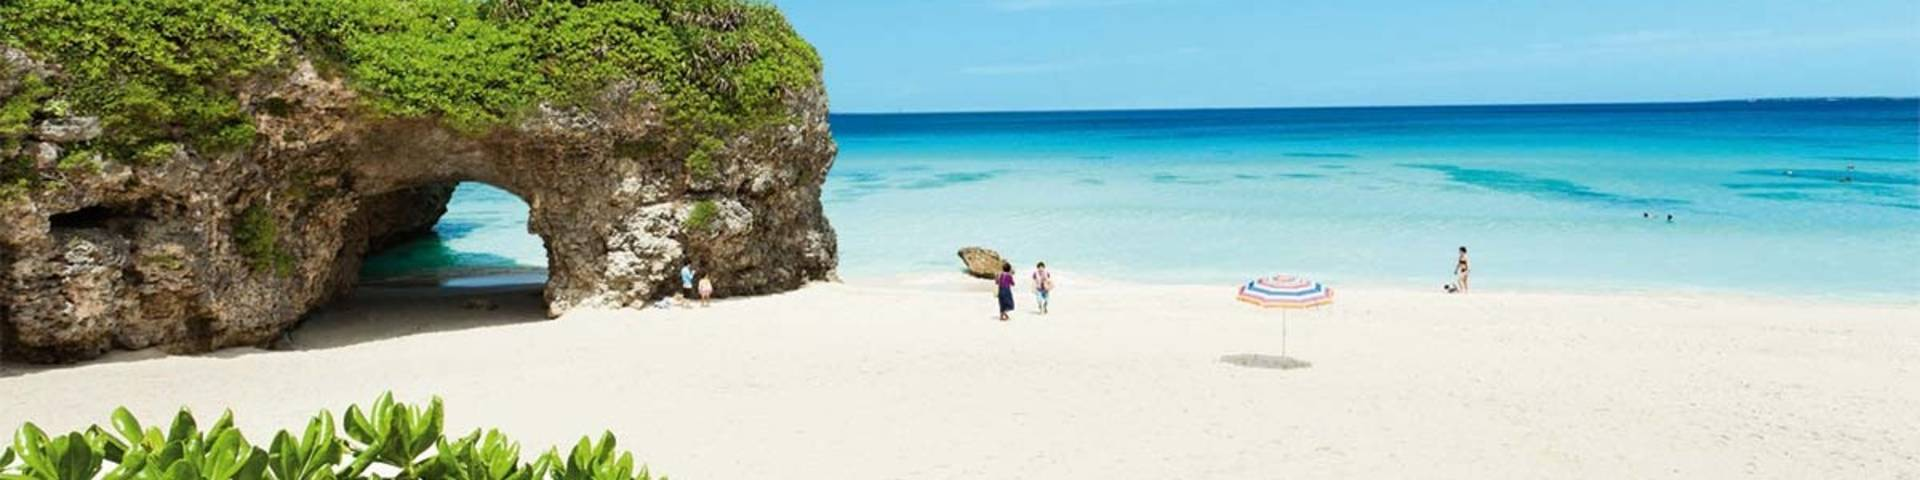 Tropical island beach paradise, Okinawa, Japan